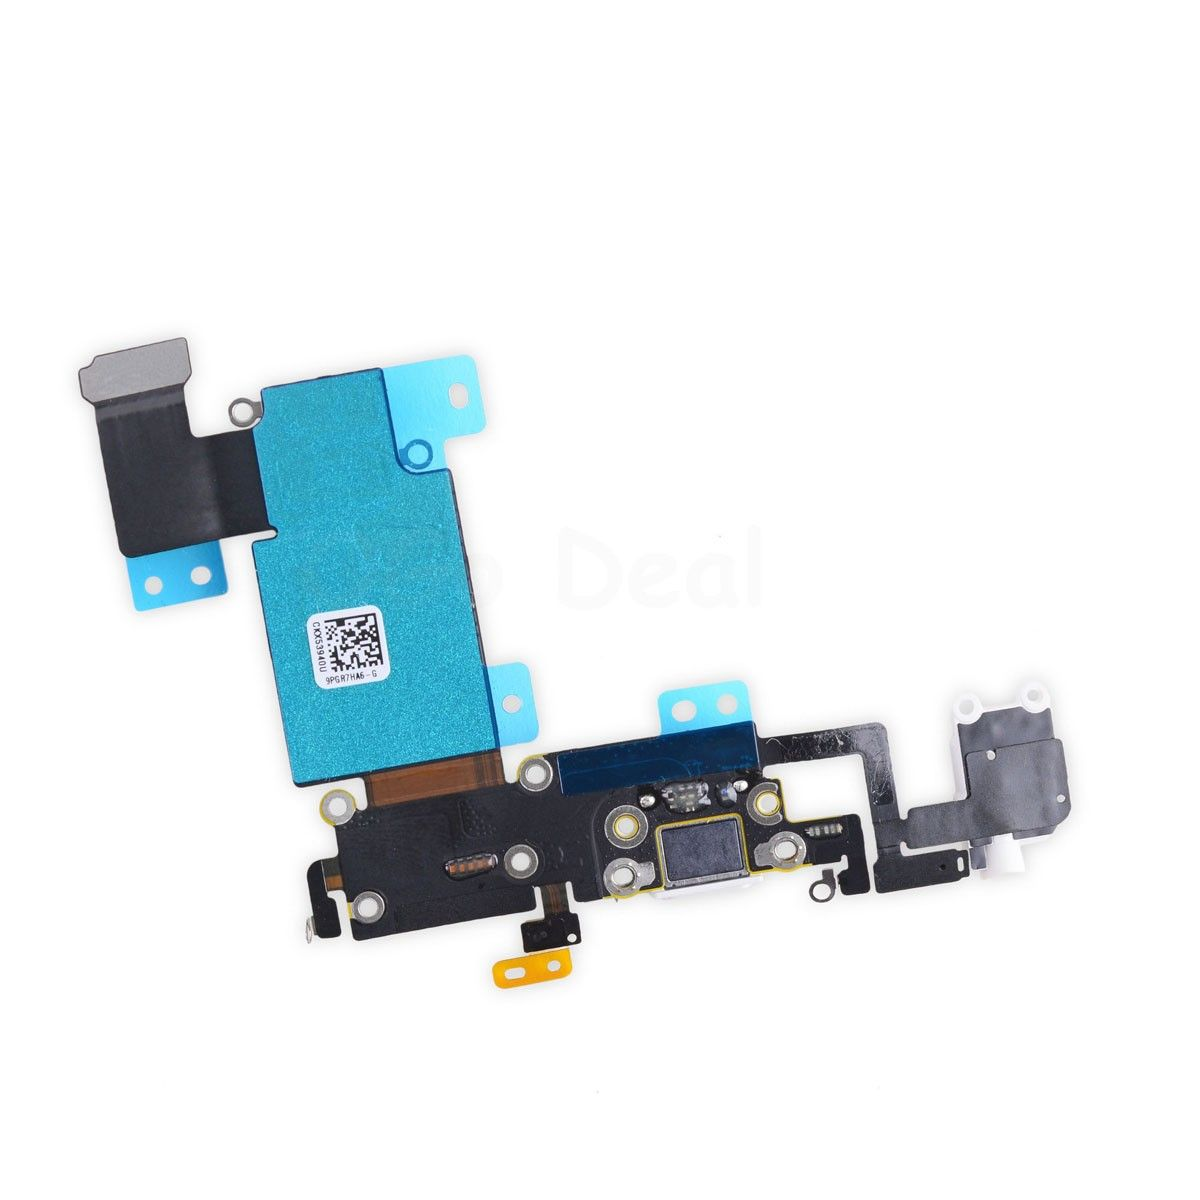 Iphone 6s Plus Charging Port Replacement